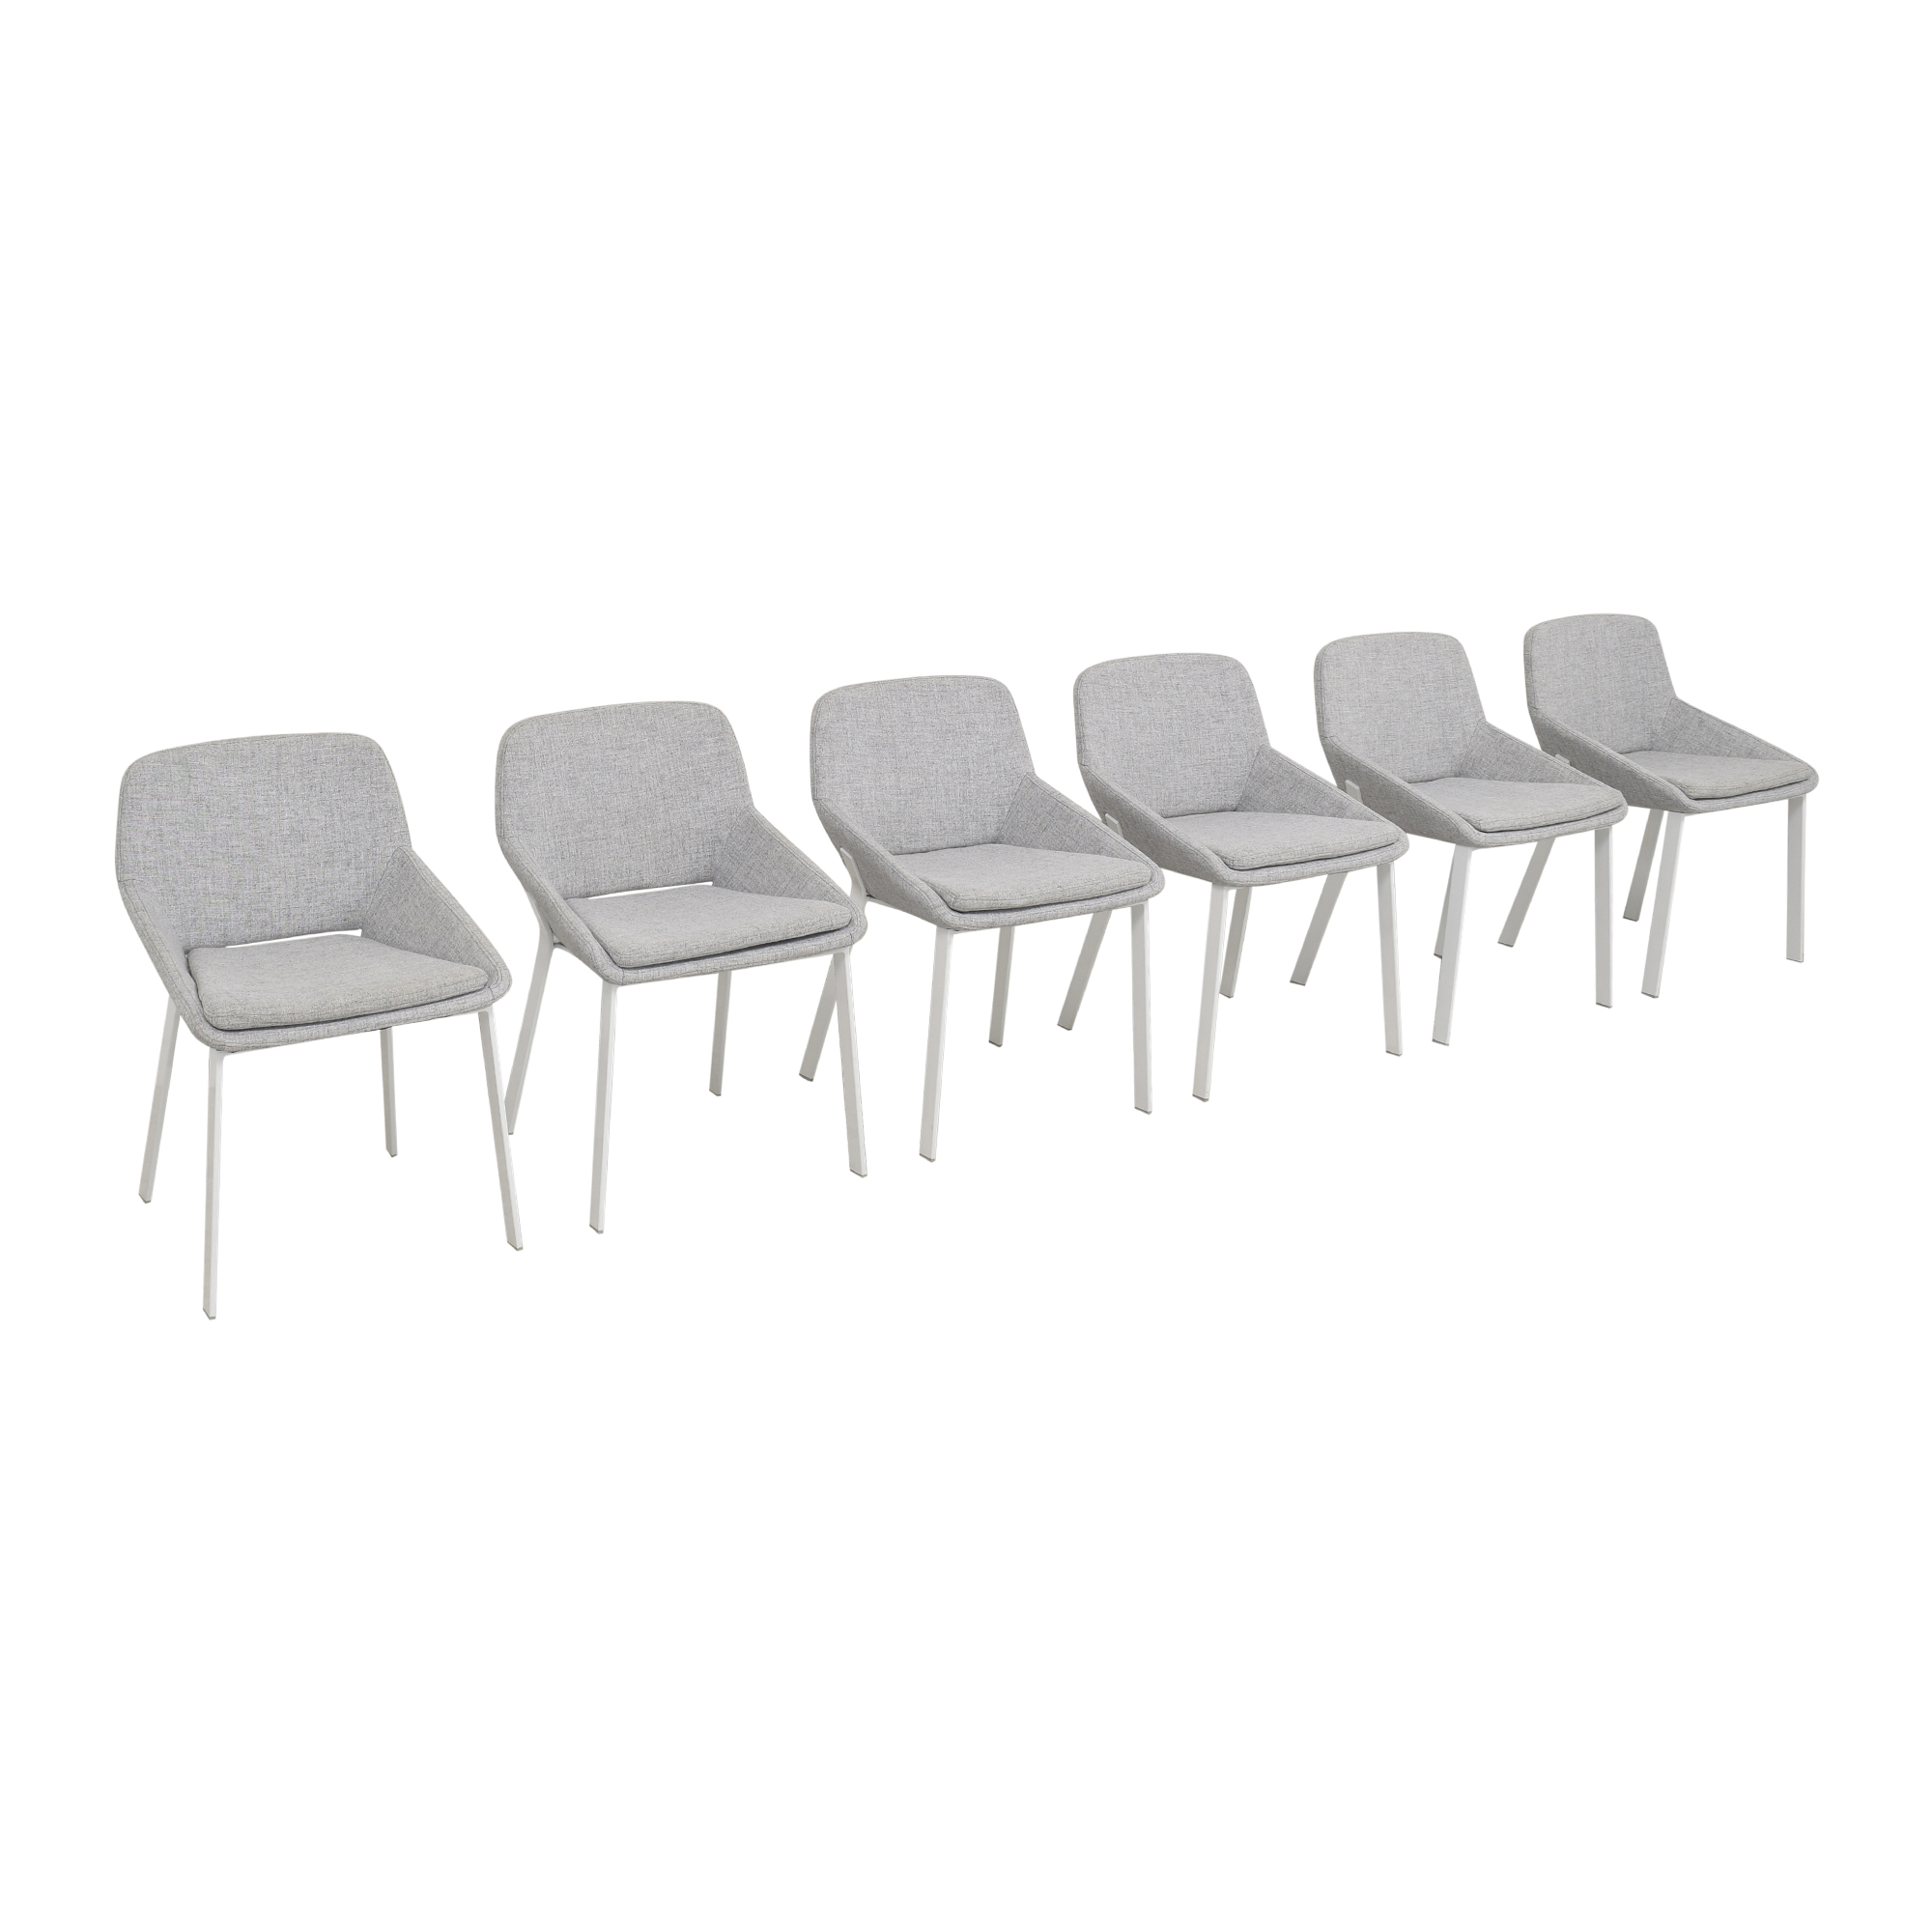 Target Target Modern by Dwell Magazine Dining Chairs second hand